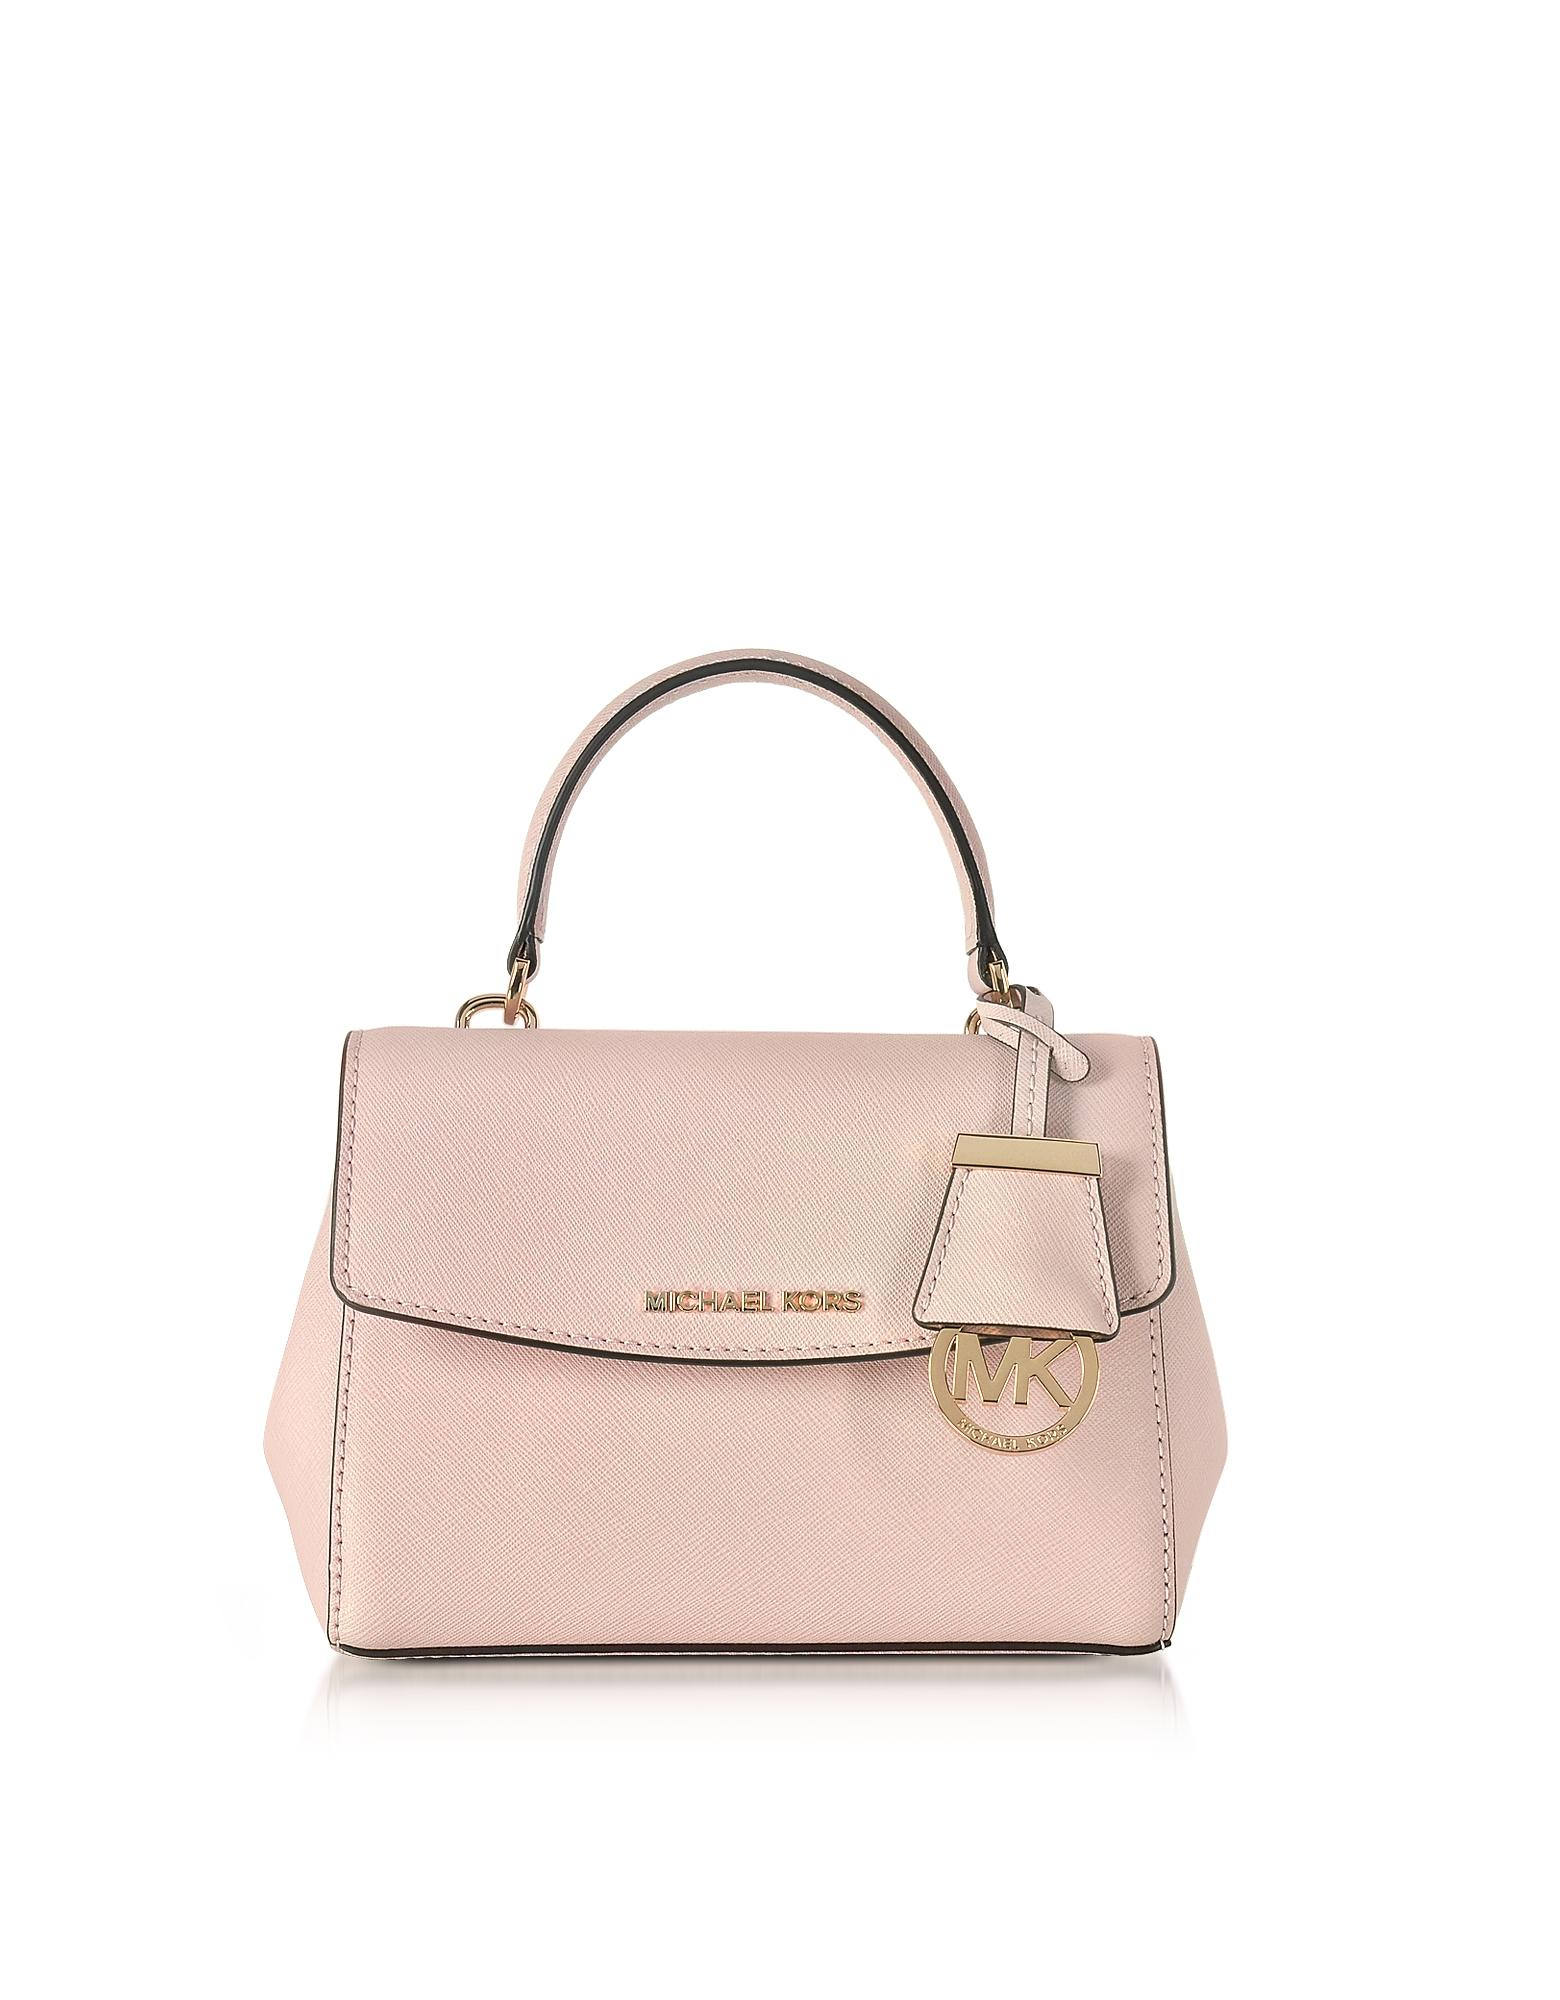 492567e06ba0 Michael Kors Ava Soft Pink Saffiano Leather Xs Crossbody Bag in Pink ...